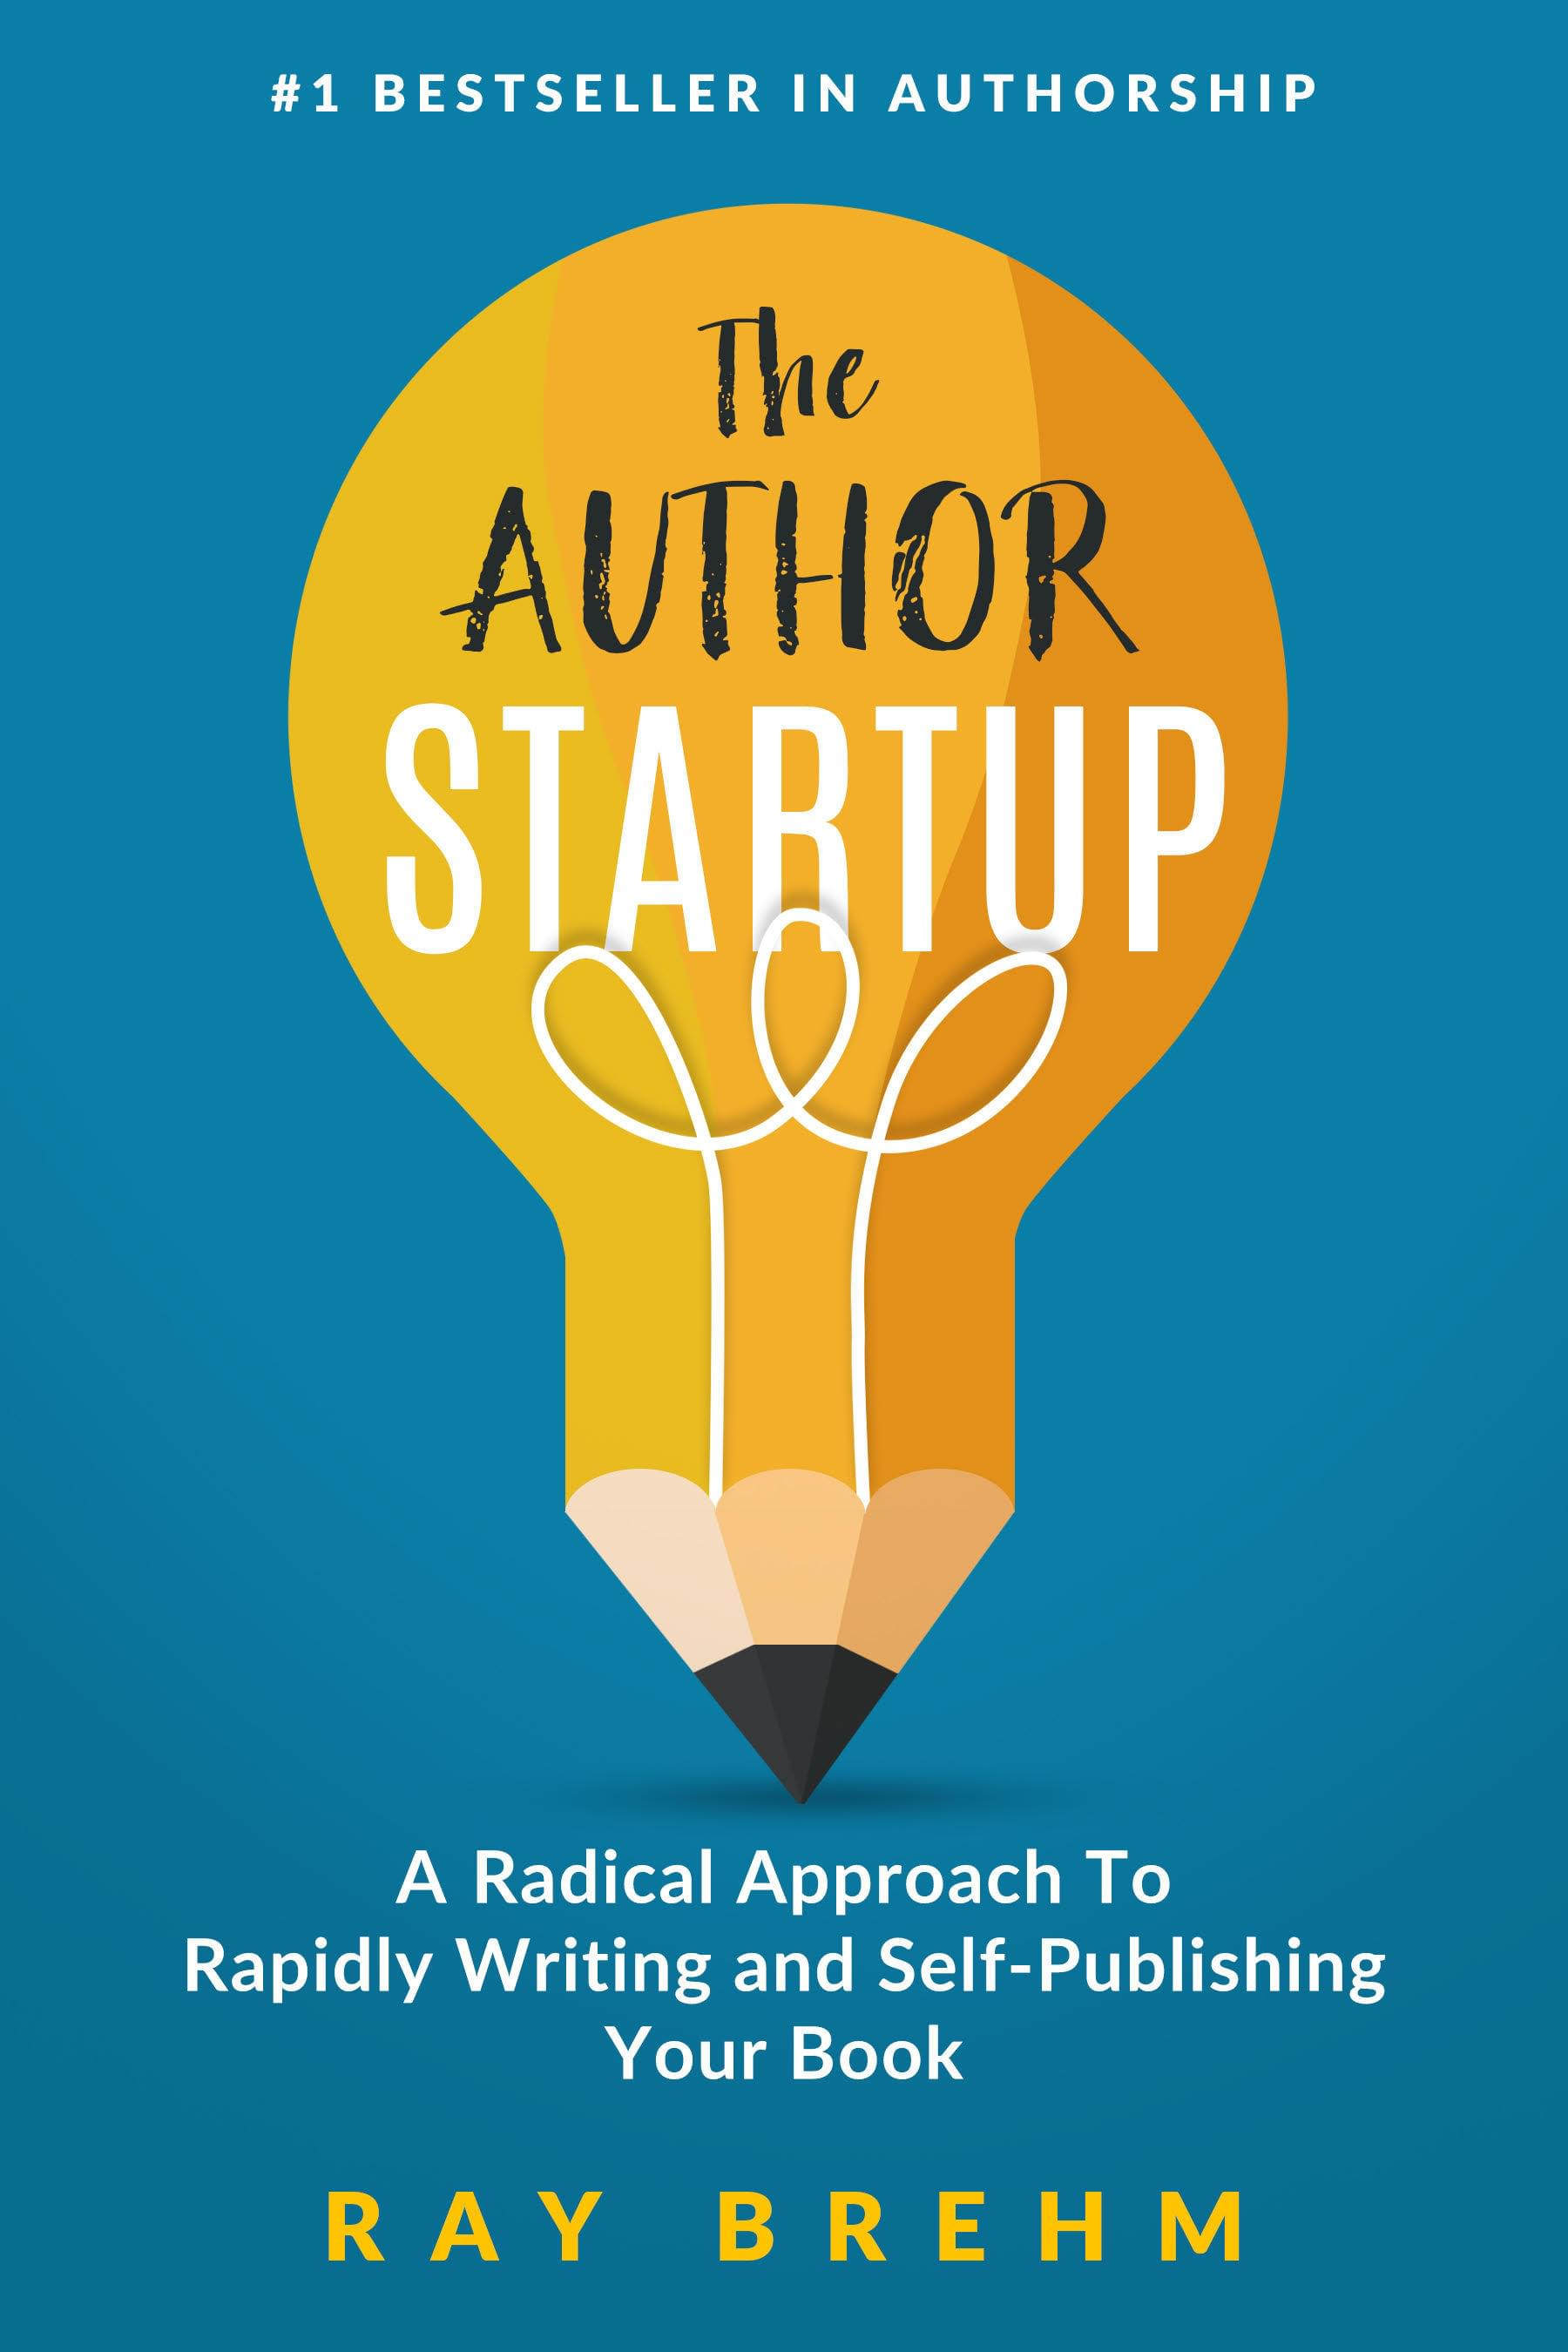 The Author Startup by Ray Brehm